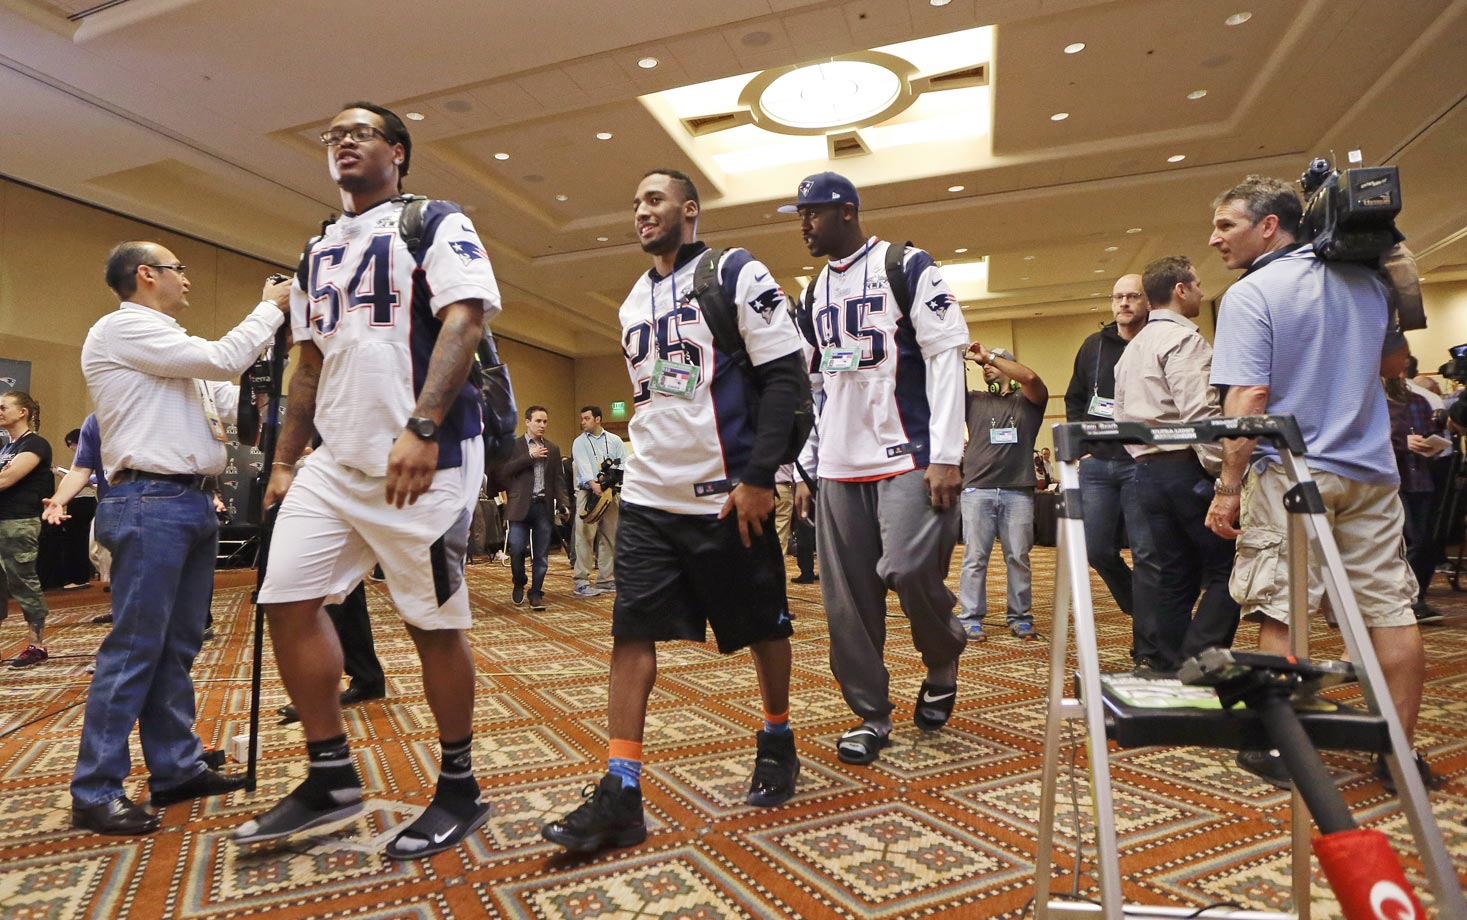 Dont'a Hightower (54), cornerback Logan Ryan (26), and defensive end Chandler Jones (95) leave at the end of the team's media availability.